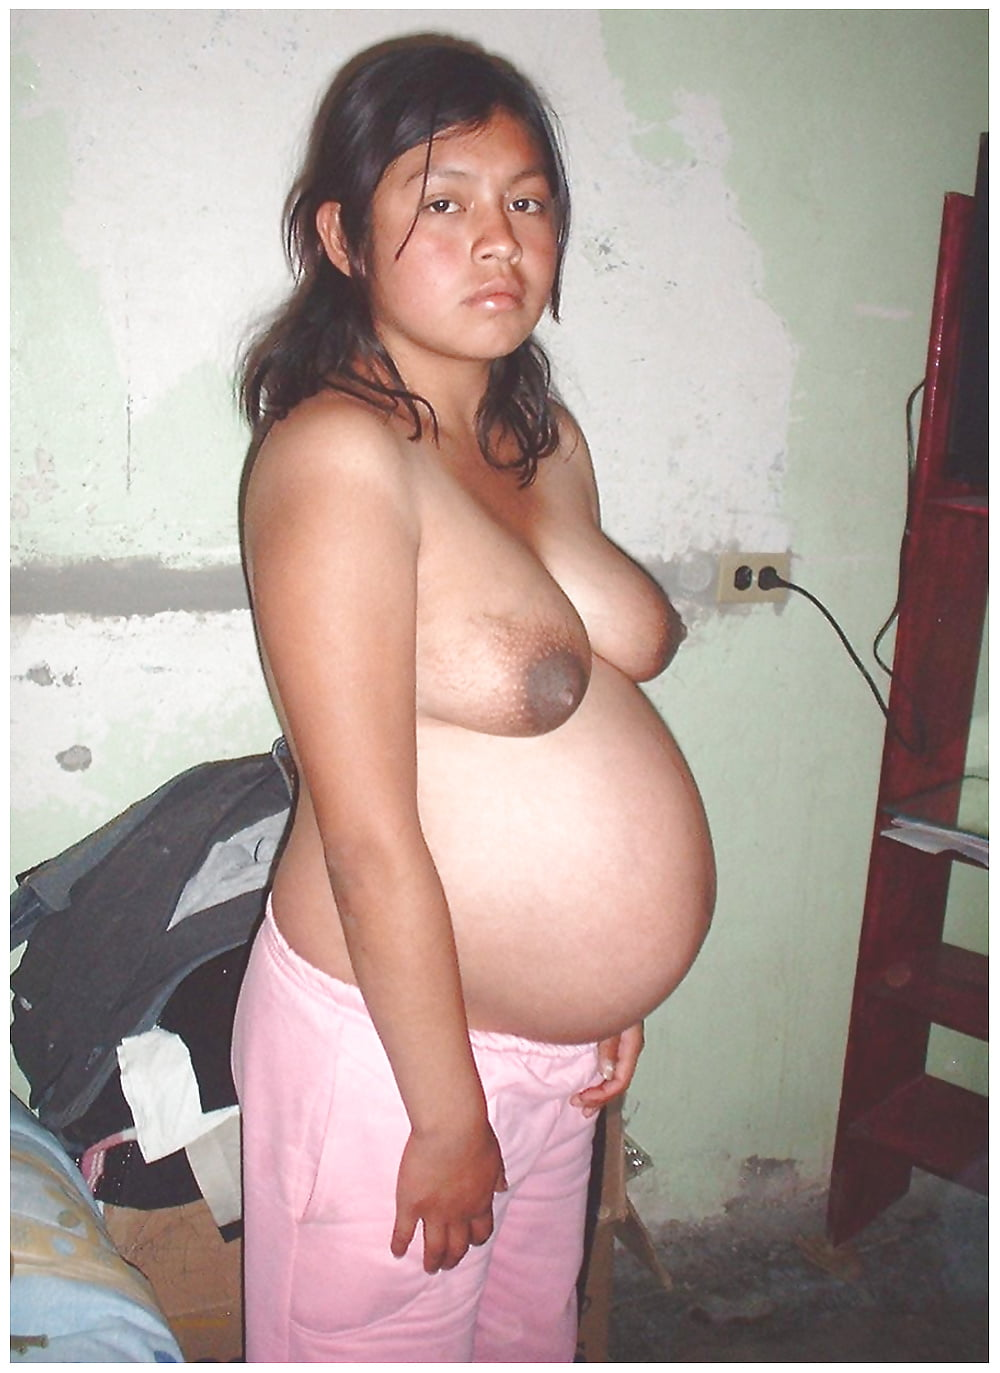 porn-skinny-pregnant-mexican-girl-naked